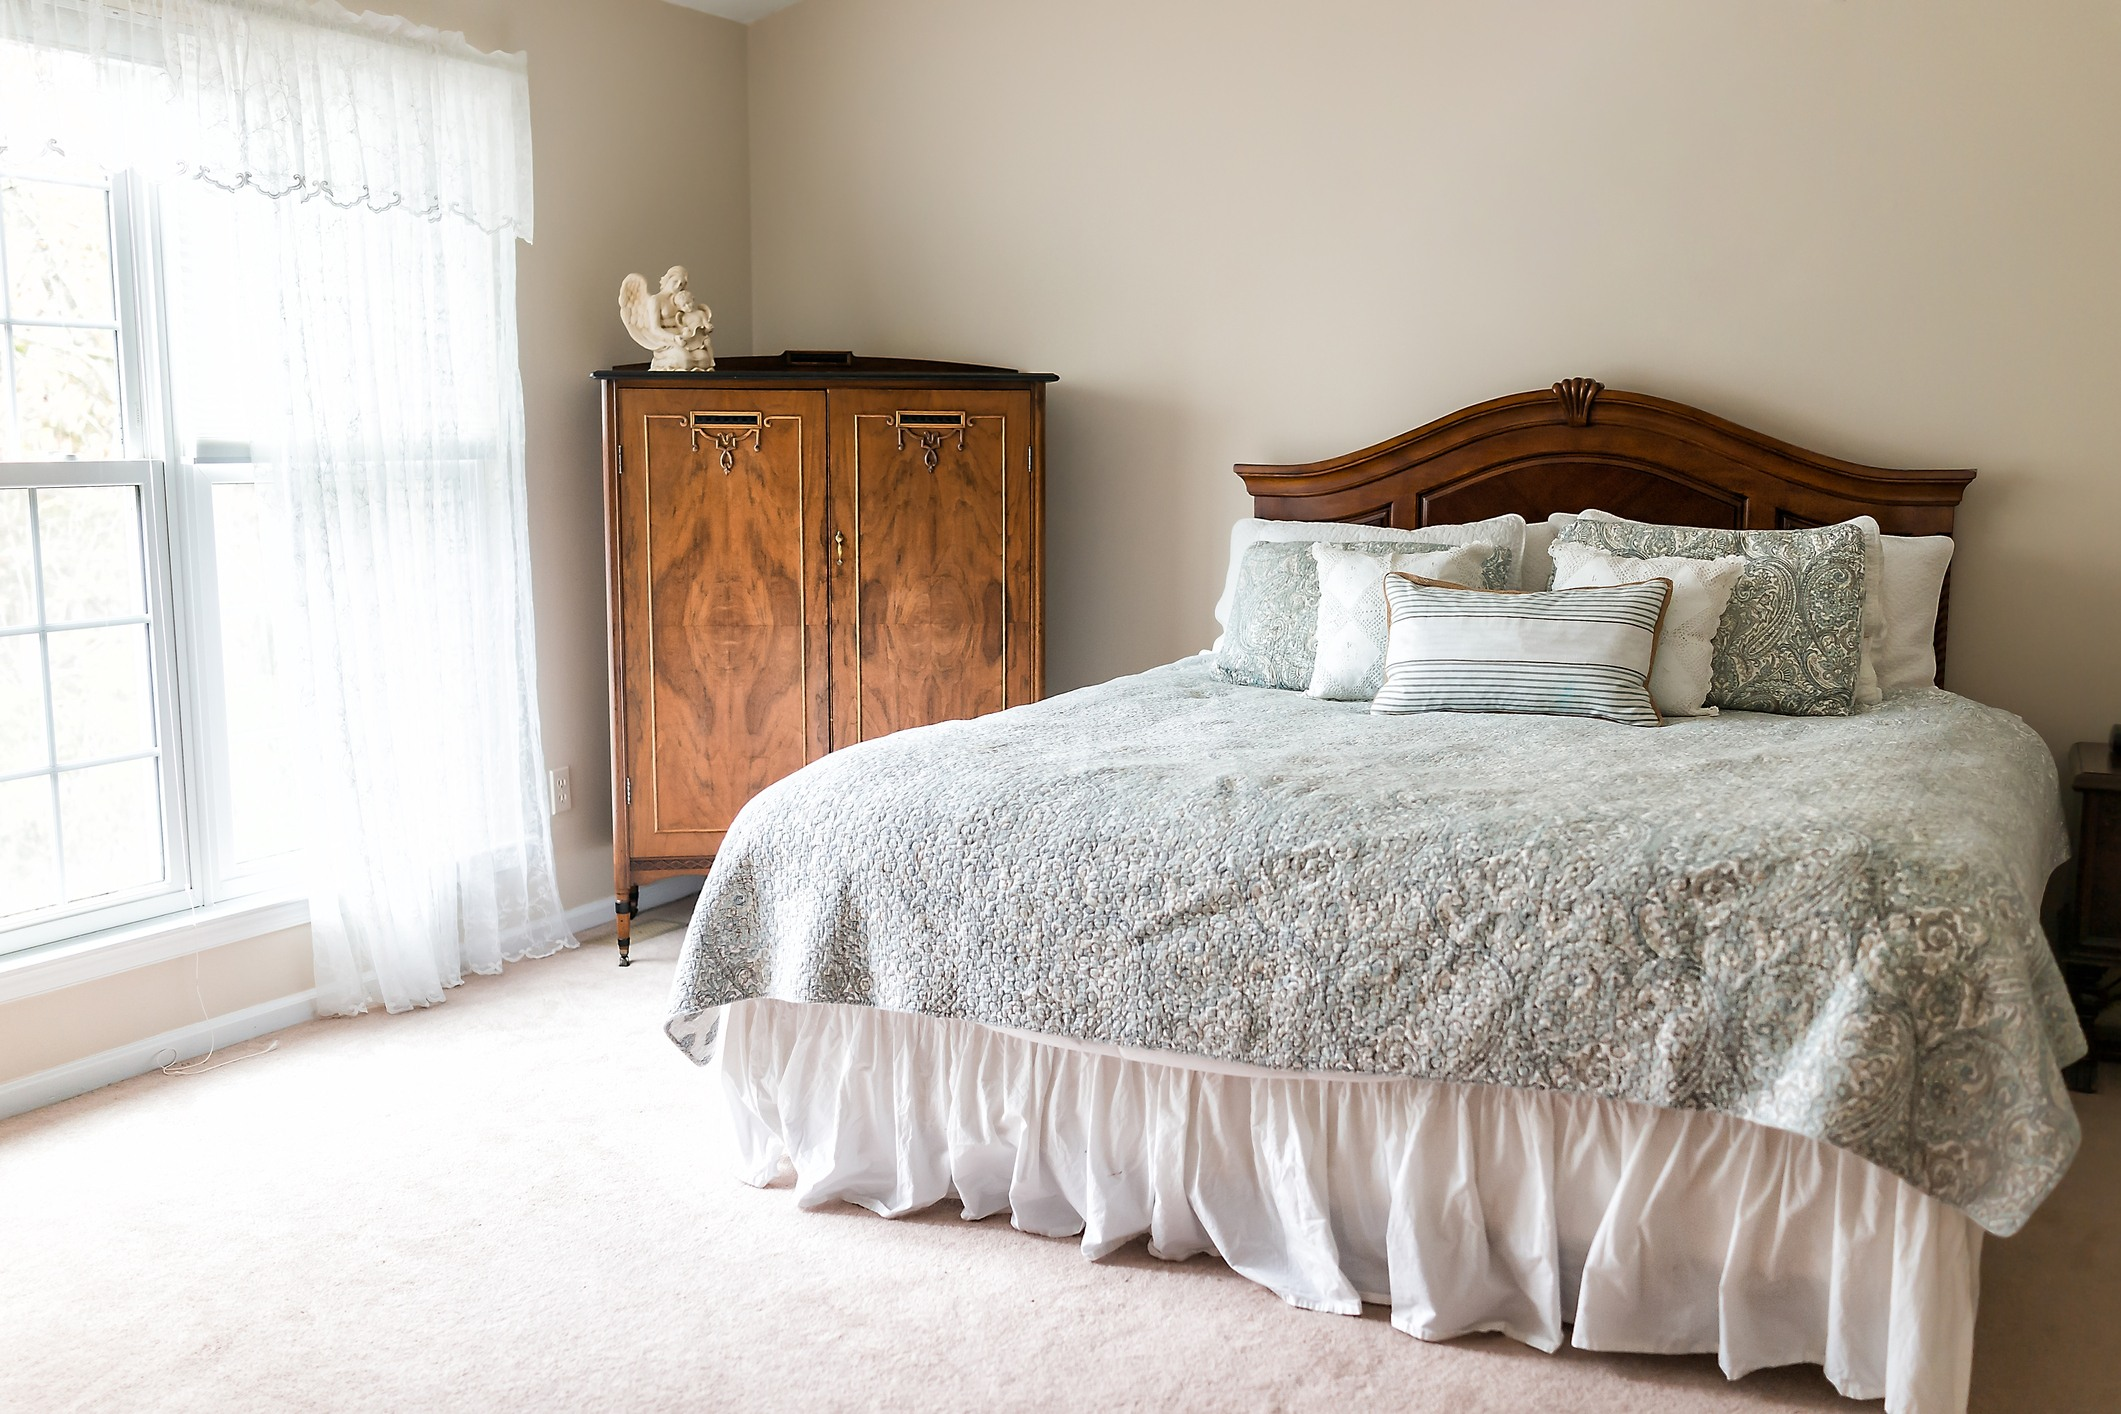 Your Home Is Seriously Outdated If It Has These Design Qualities Plaid Bedroom Decorating Ideas Html on plaid green, plaid bedrooms for boys, plaid bedroom wallpaper, plaid rugs, plaid nursery ideas, plaid curtains, plaid bedroom themes, plaid pink, plaid bedroom decoration, plaid fabrics, plaid bedding,